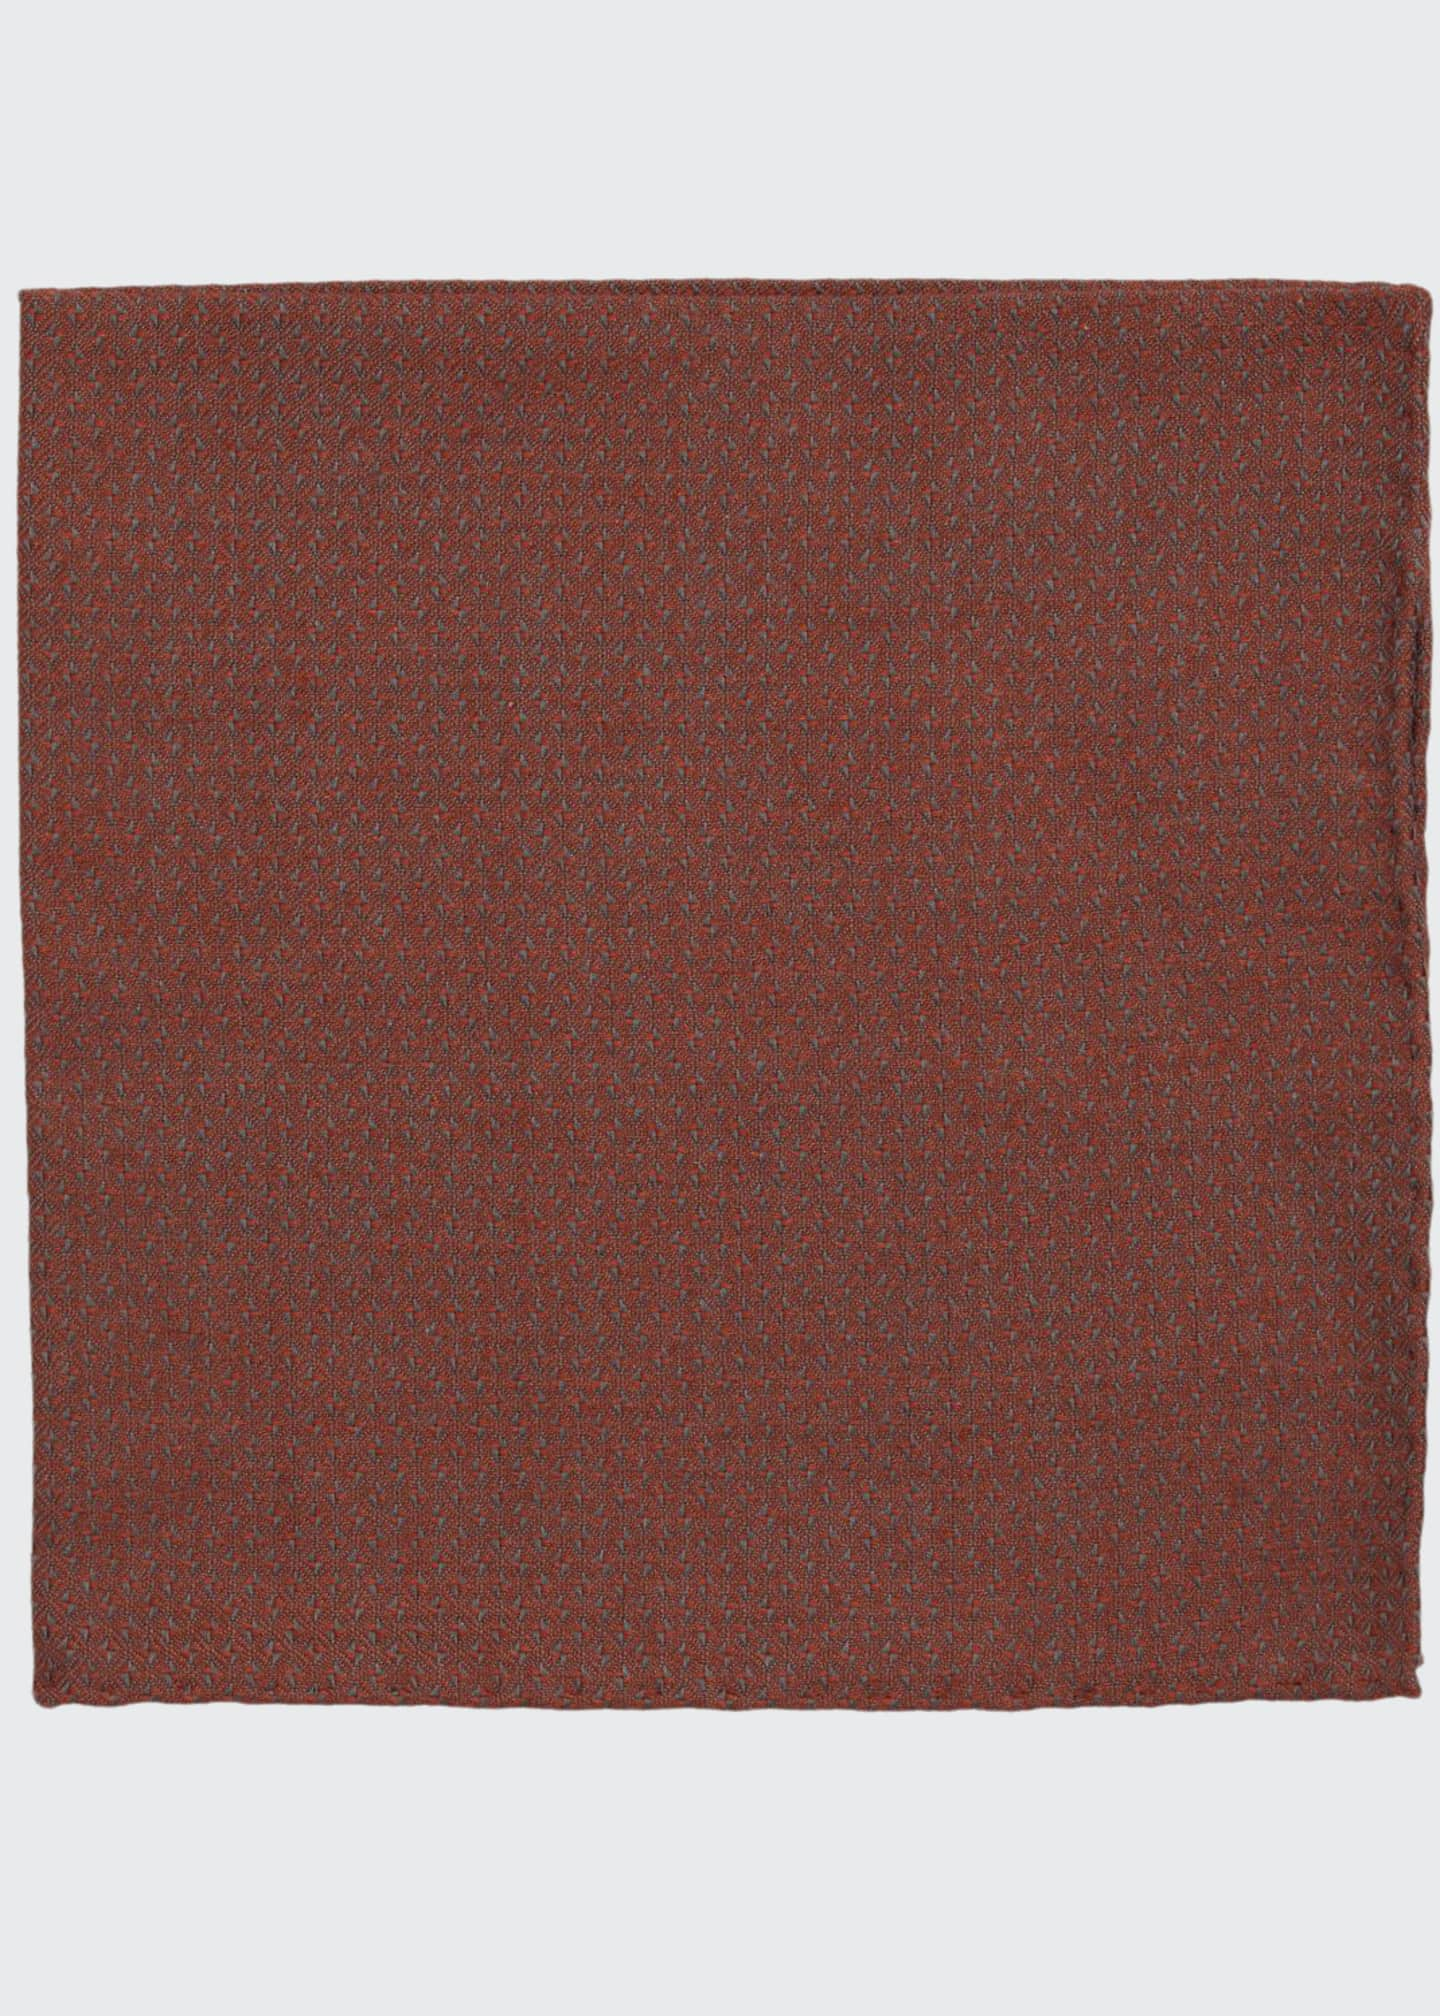 Simonnot Godard Jacquard Woven Pocket Square, Red